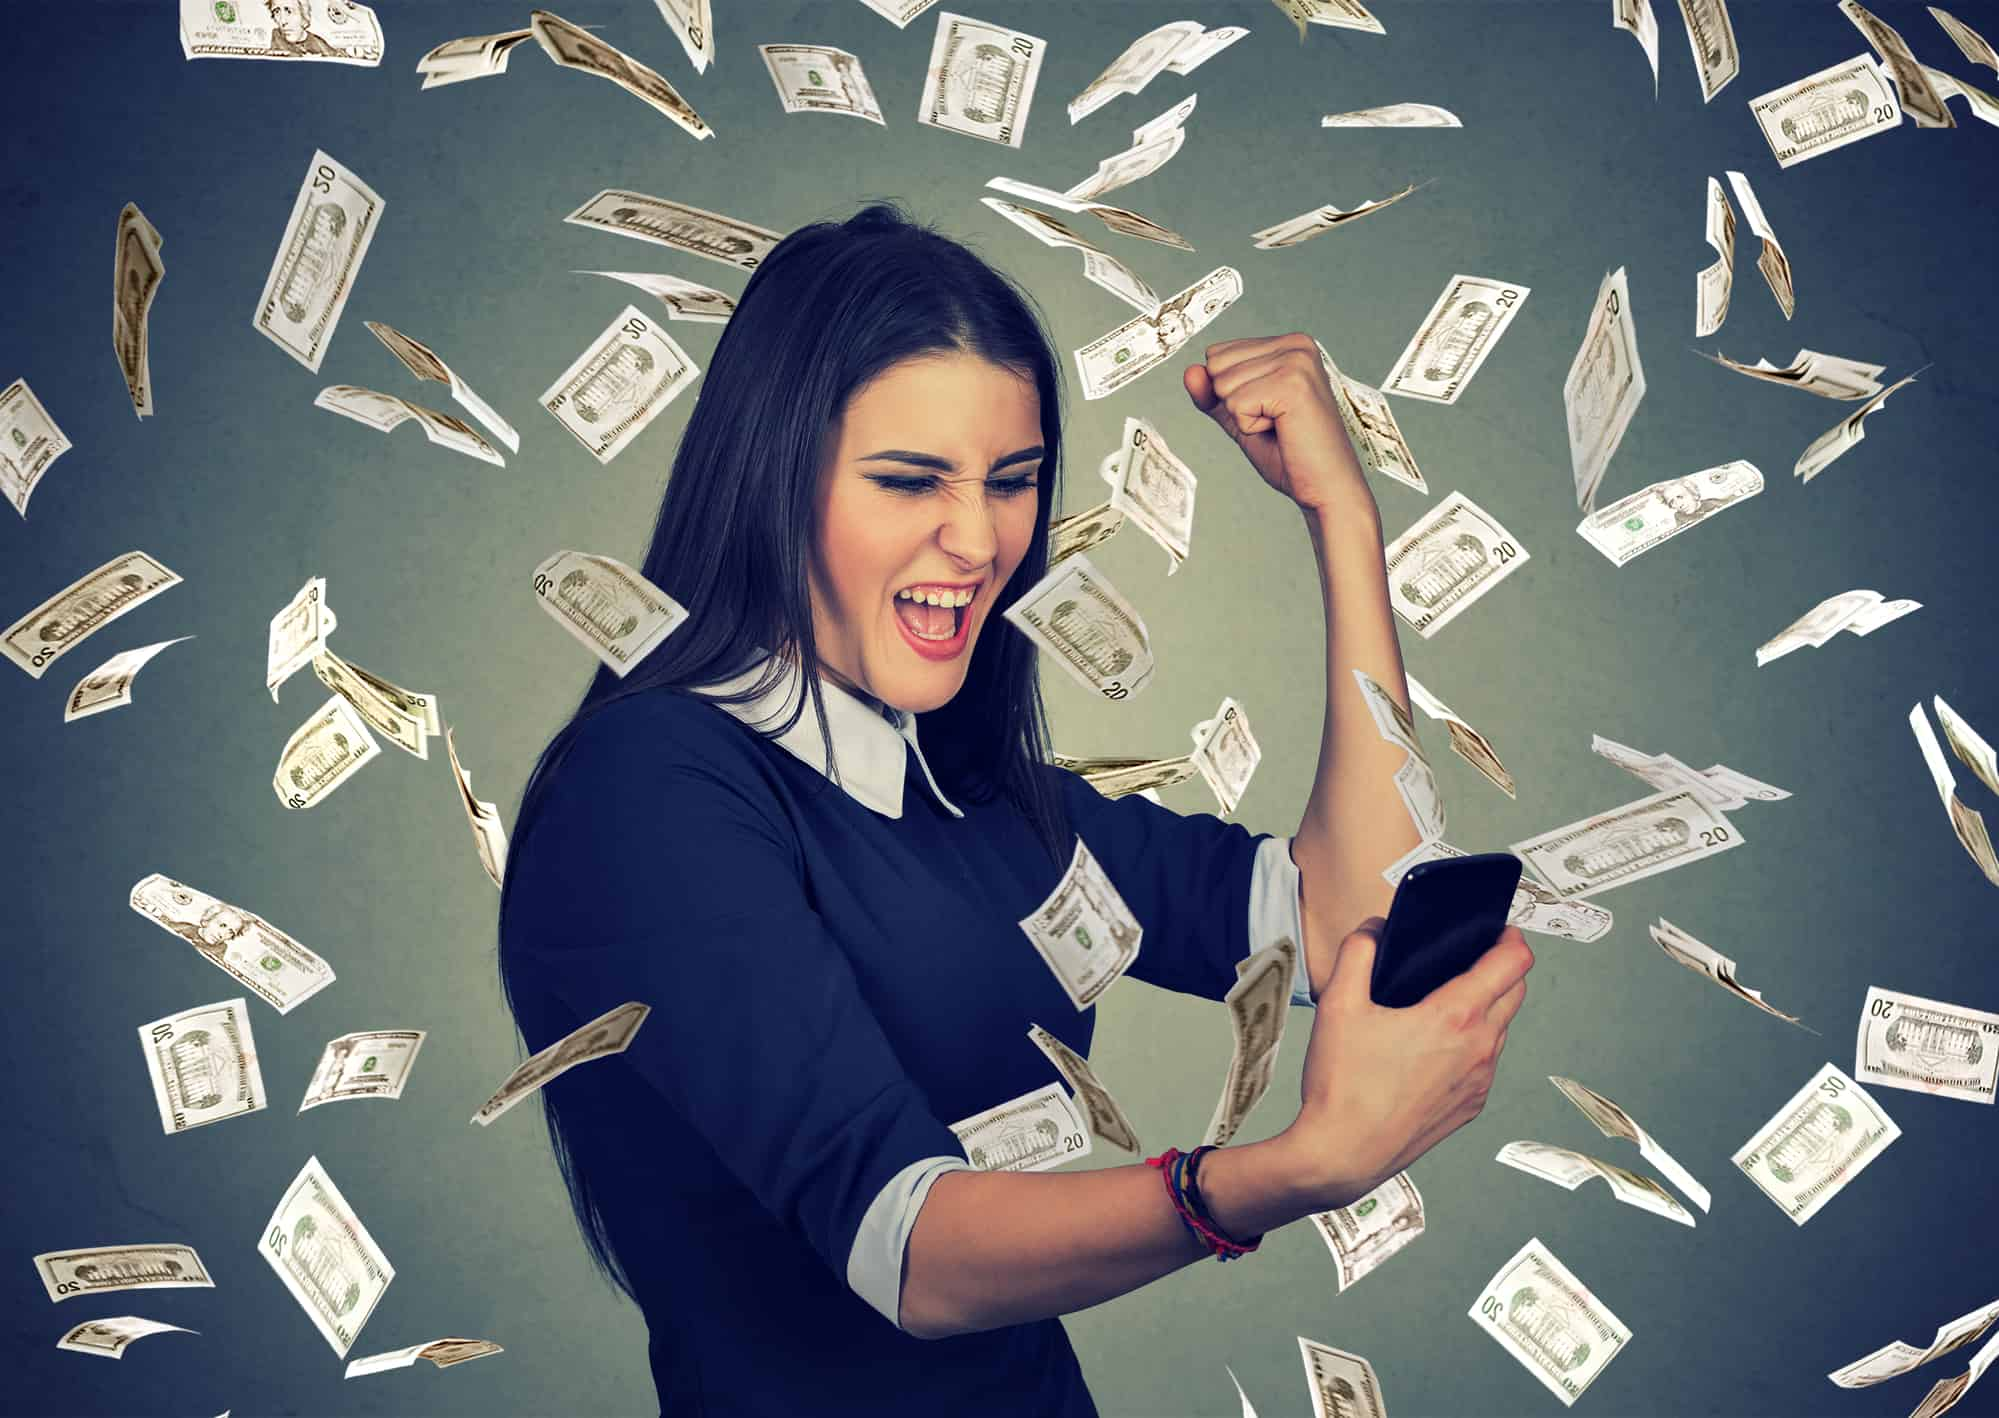 A woman standing in a shower of cash after shopping online